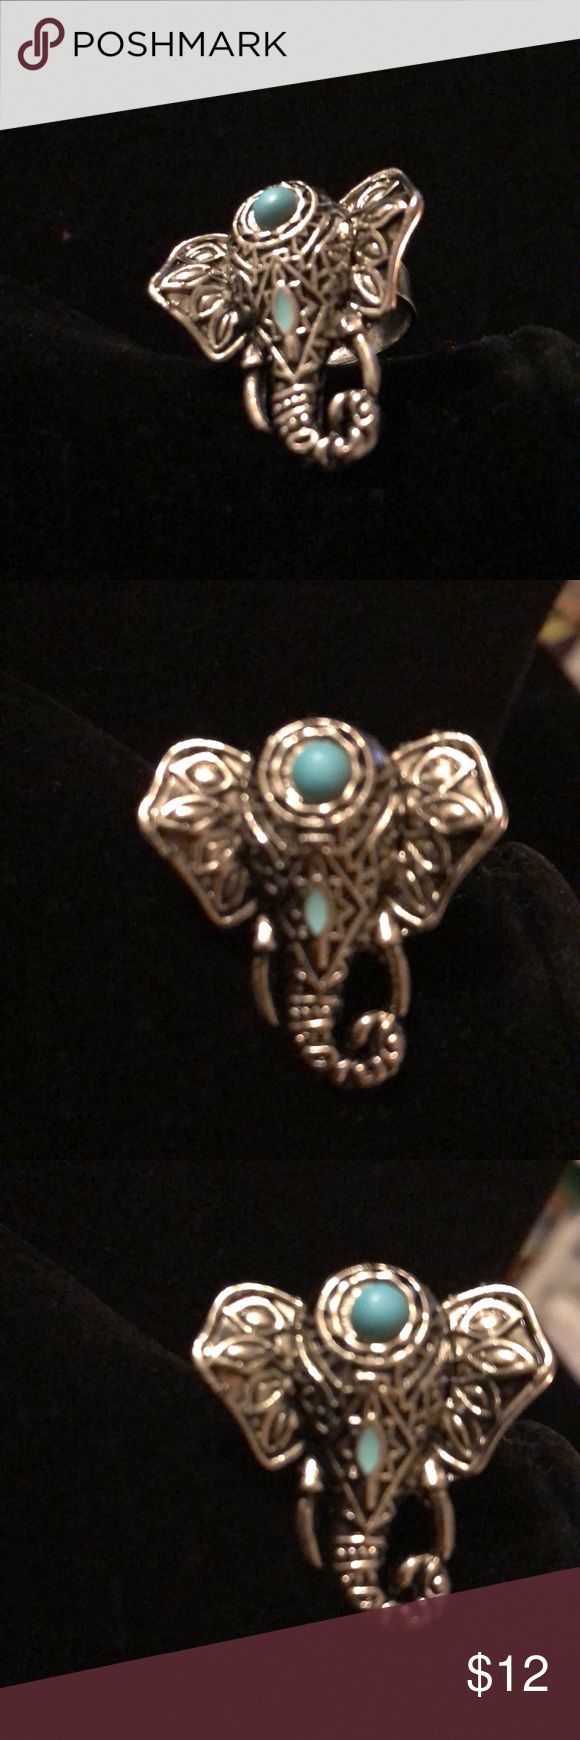 New silver Turquoise Elephant ring New turquoise silver elephant ring adjustable Jewelry Rings